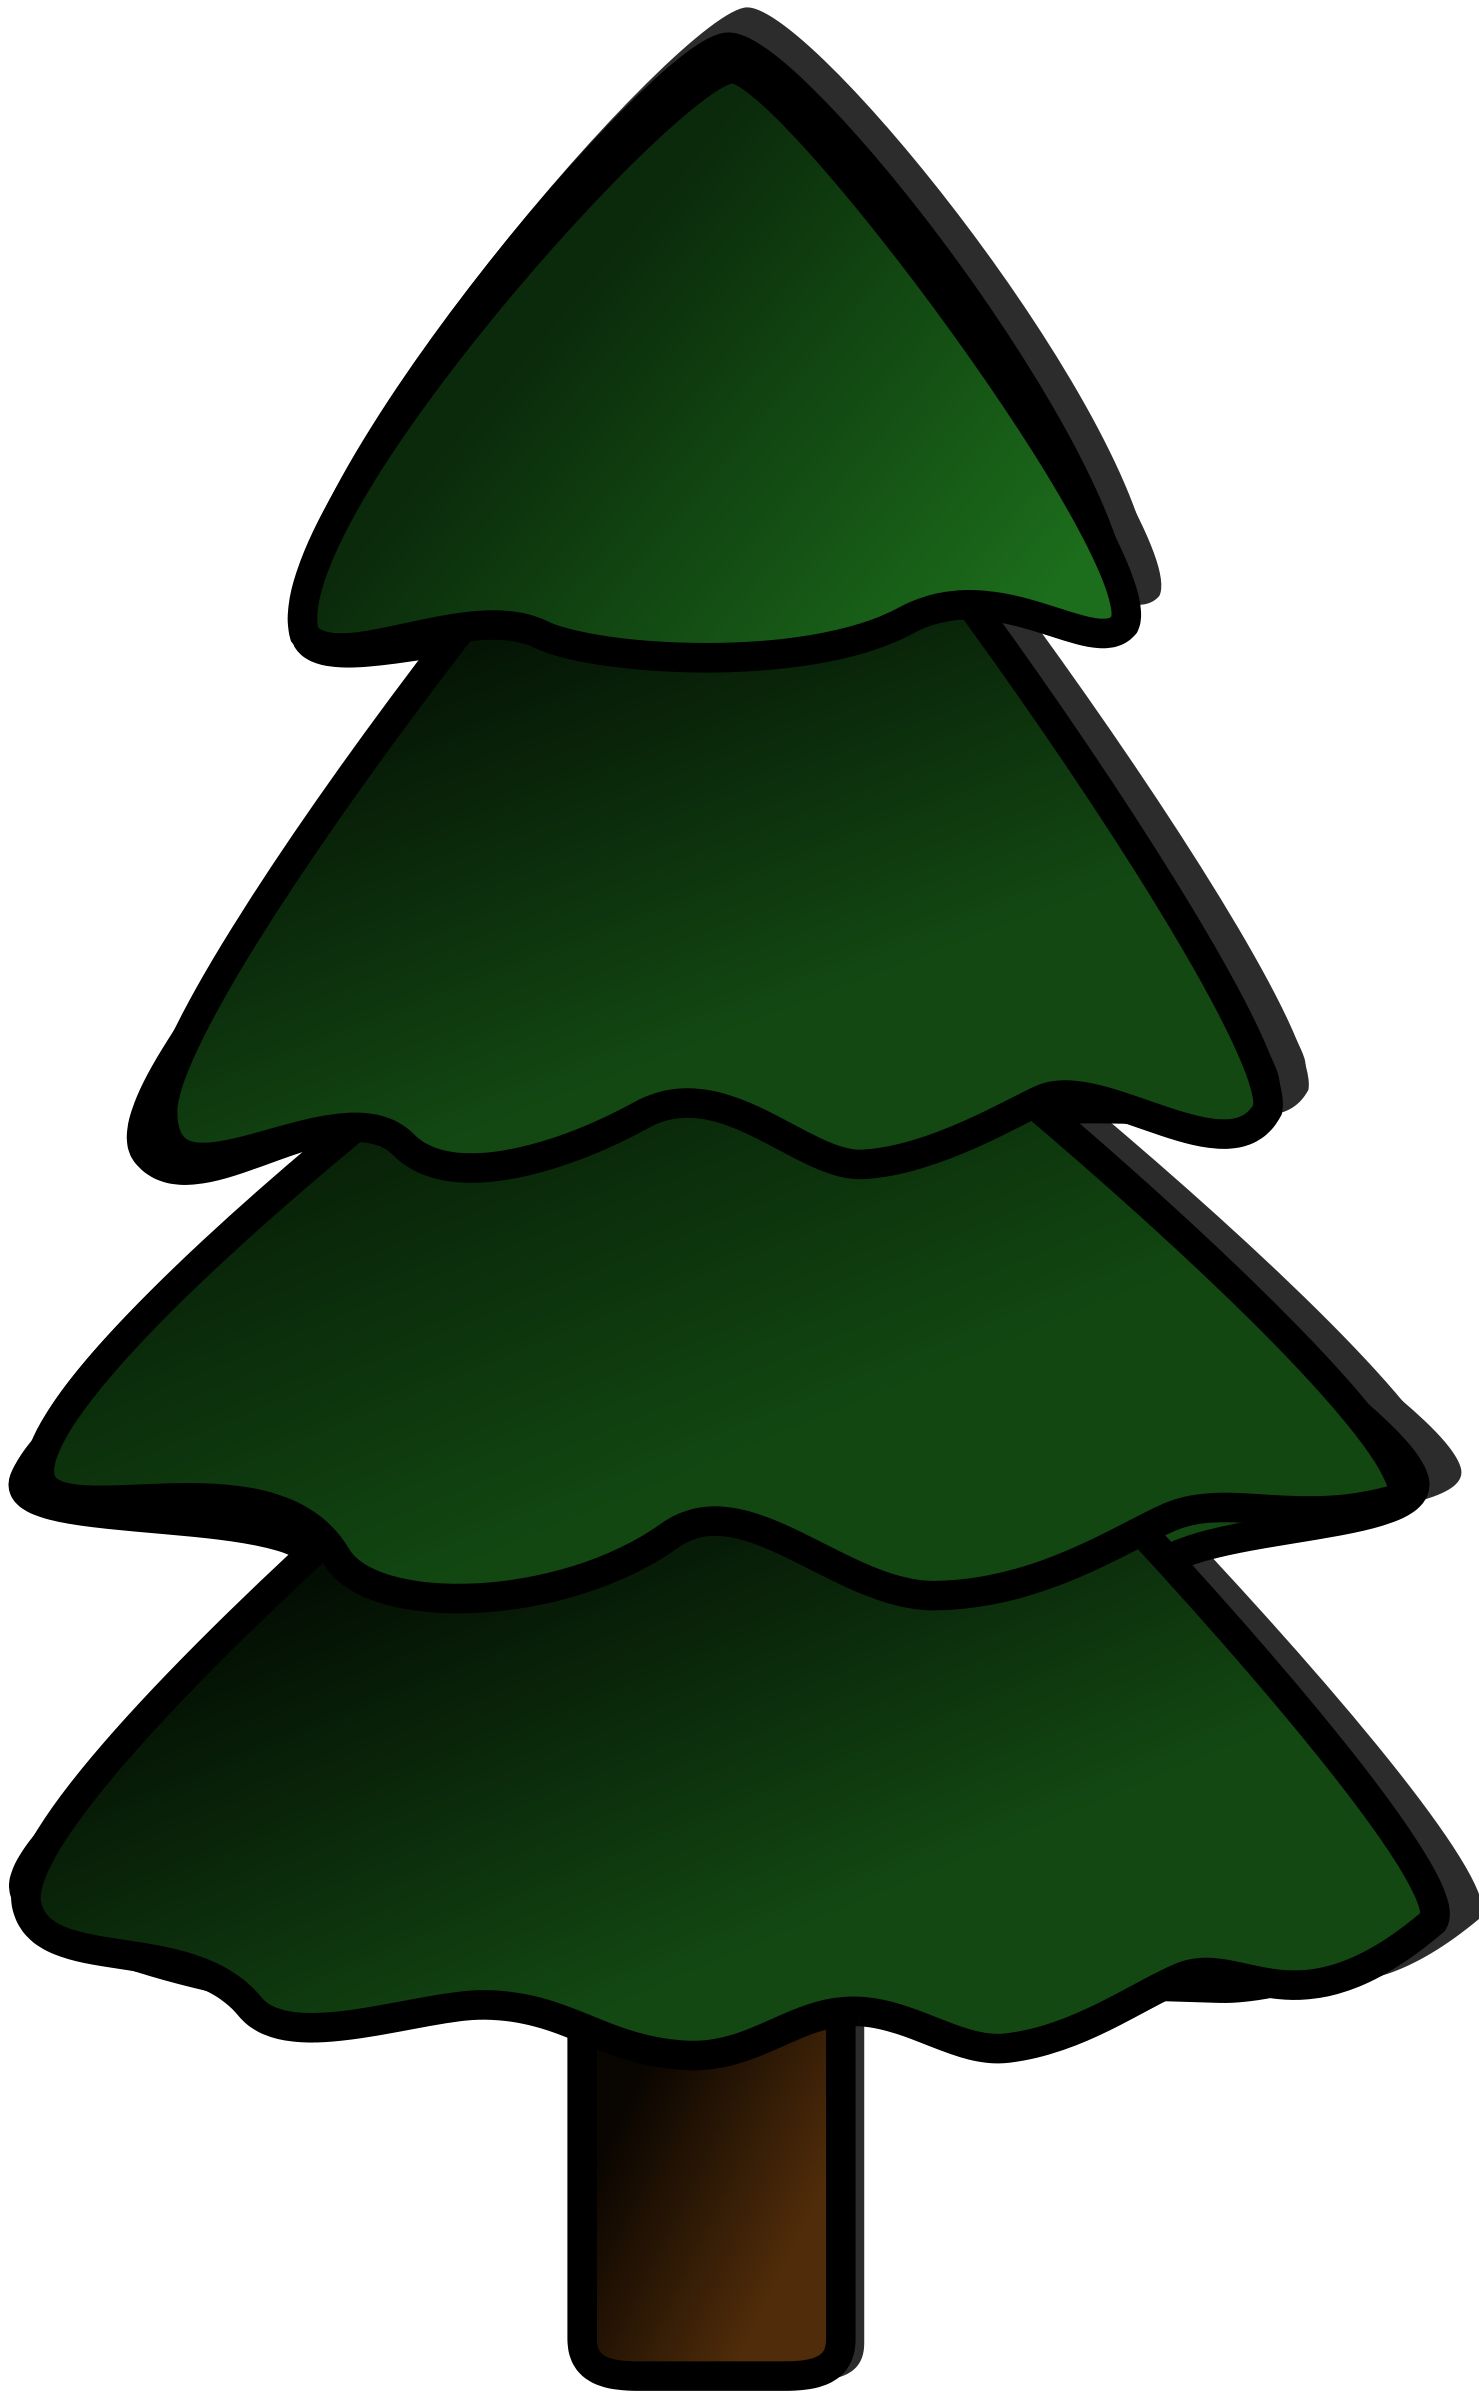 Silhouette at getdrawings com. Clipart trees evergreen